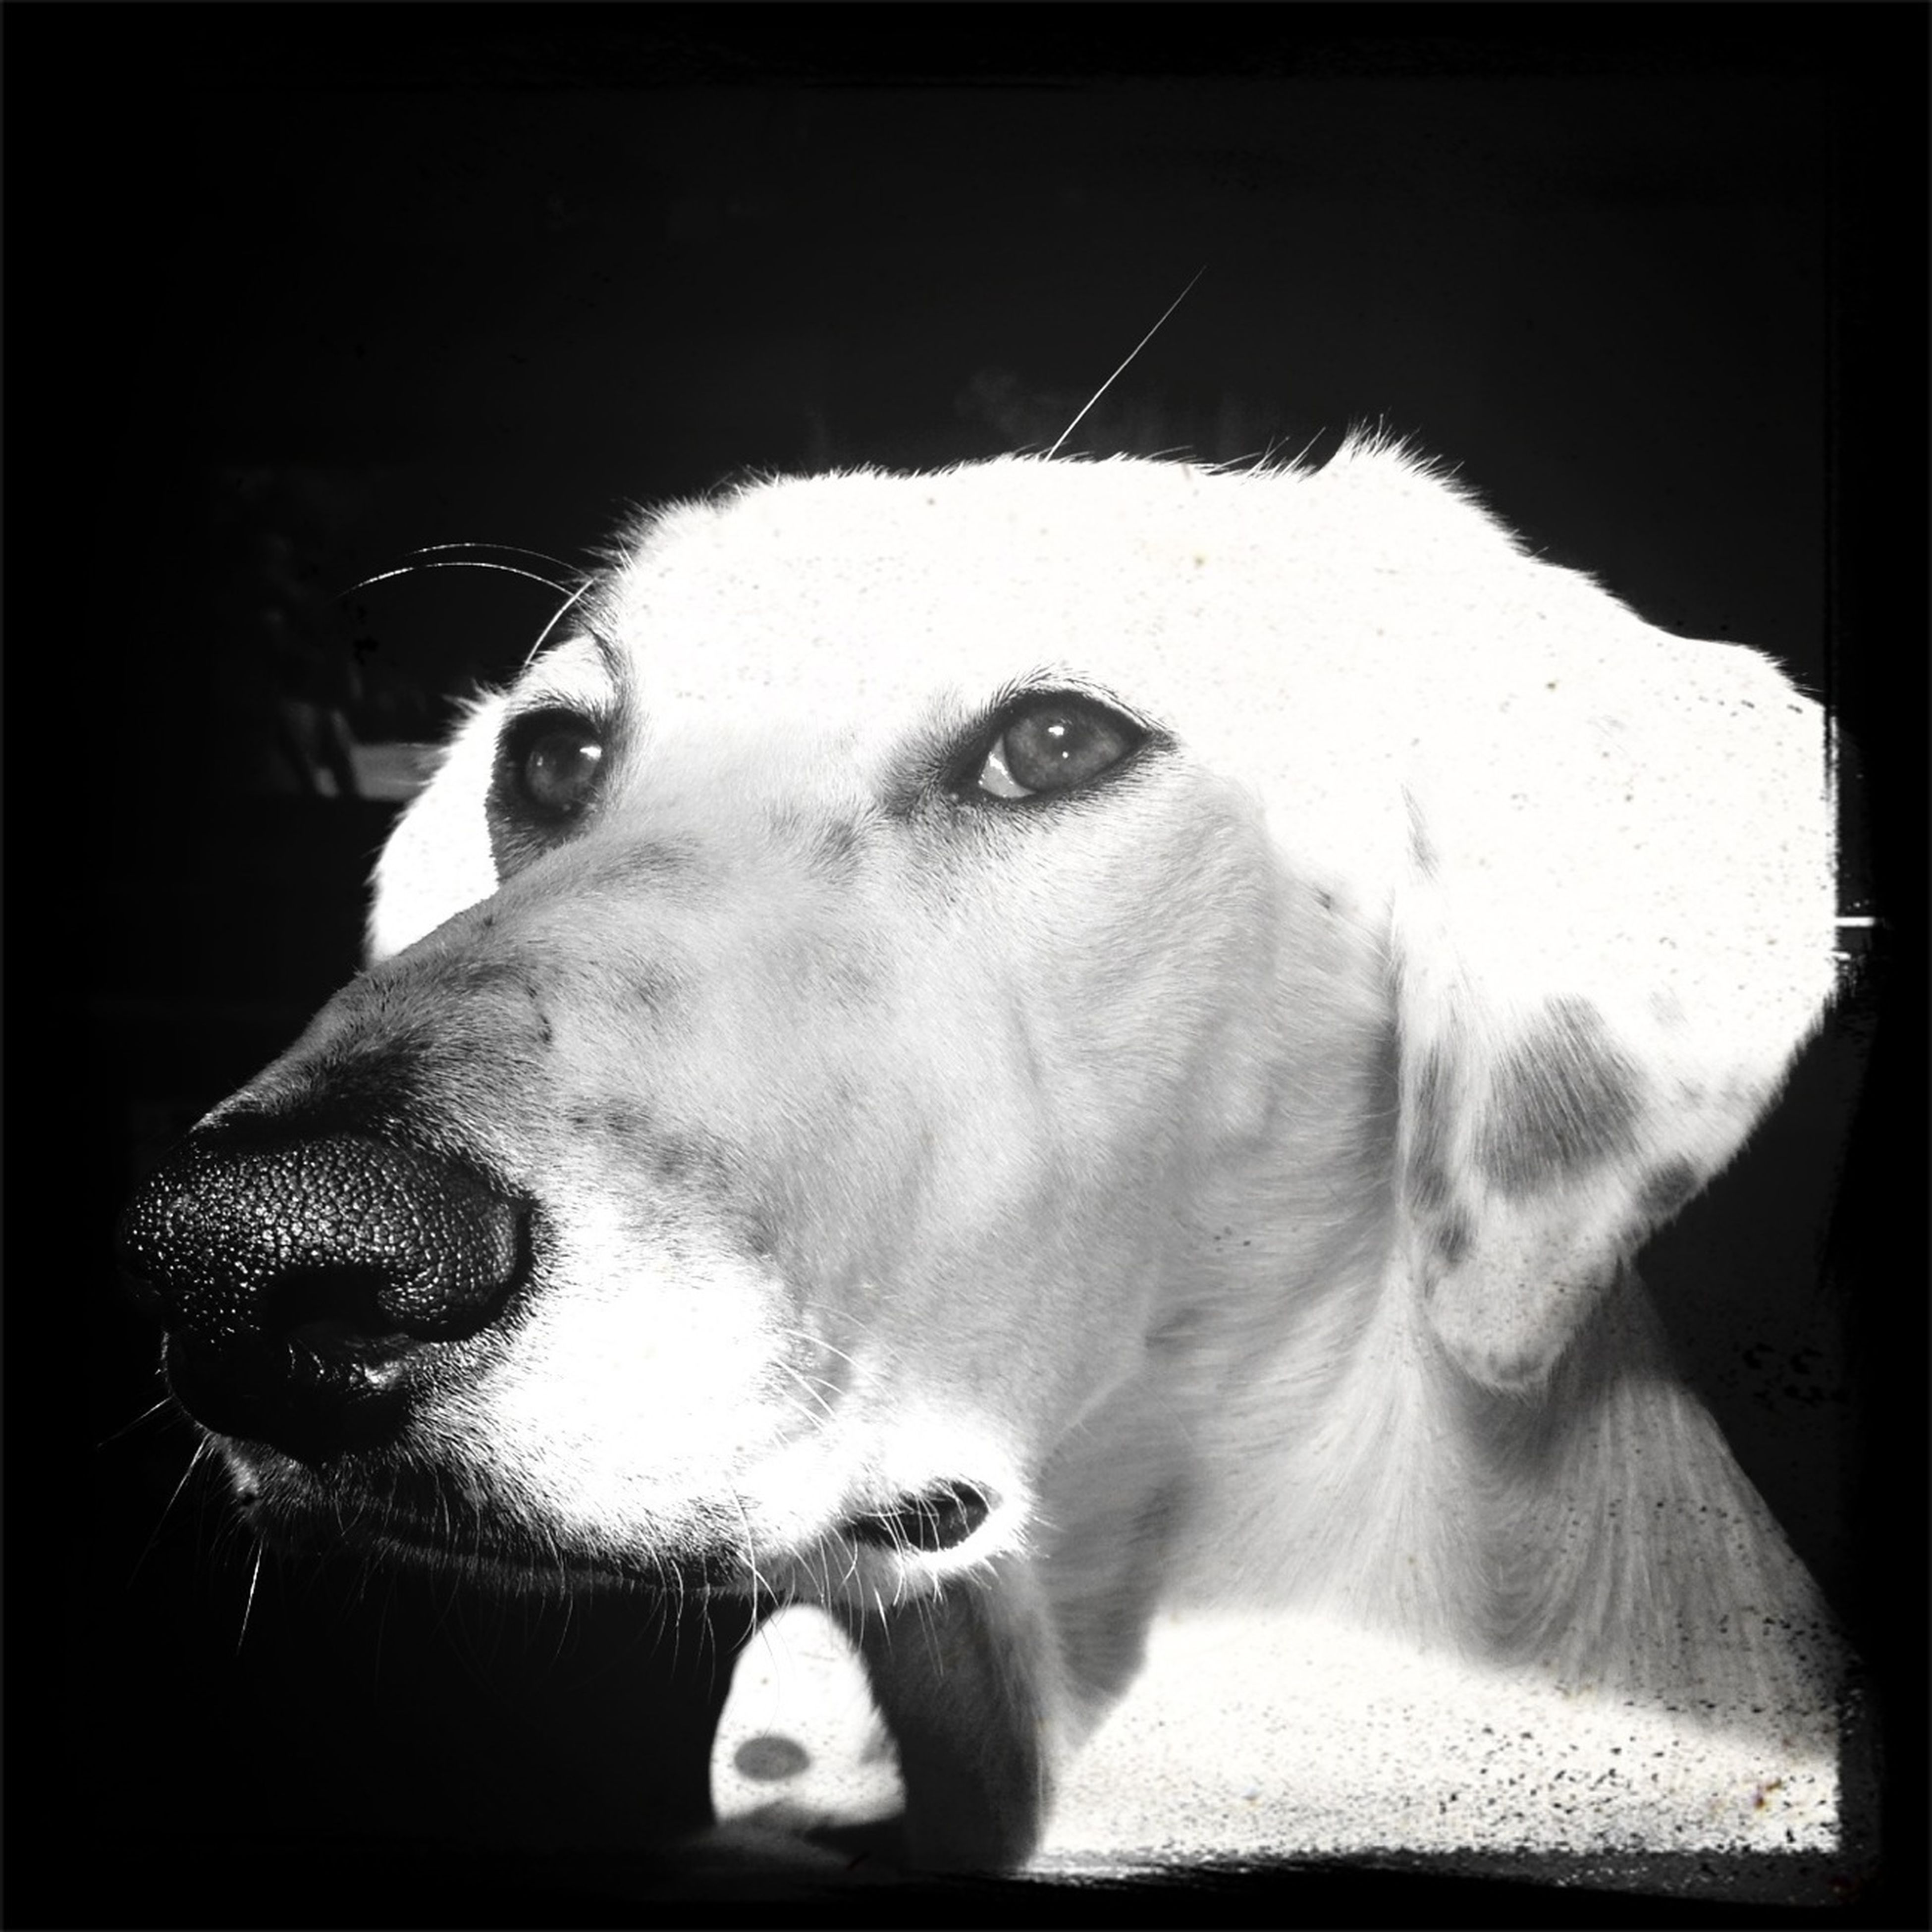 domestic animals, animal themes, dog, one animal, pets, mammal, animal head, indoors, close-up, portrait, looking at camera, animal body part, loyalty, zoology, home interior, front view, pampered pets, snout, focus on foreground